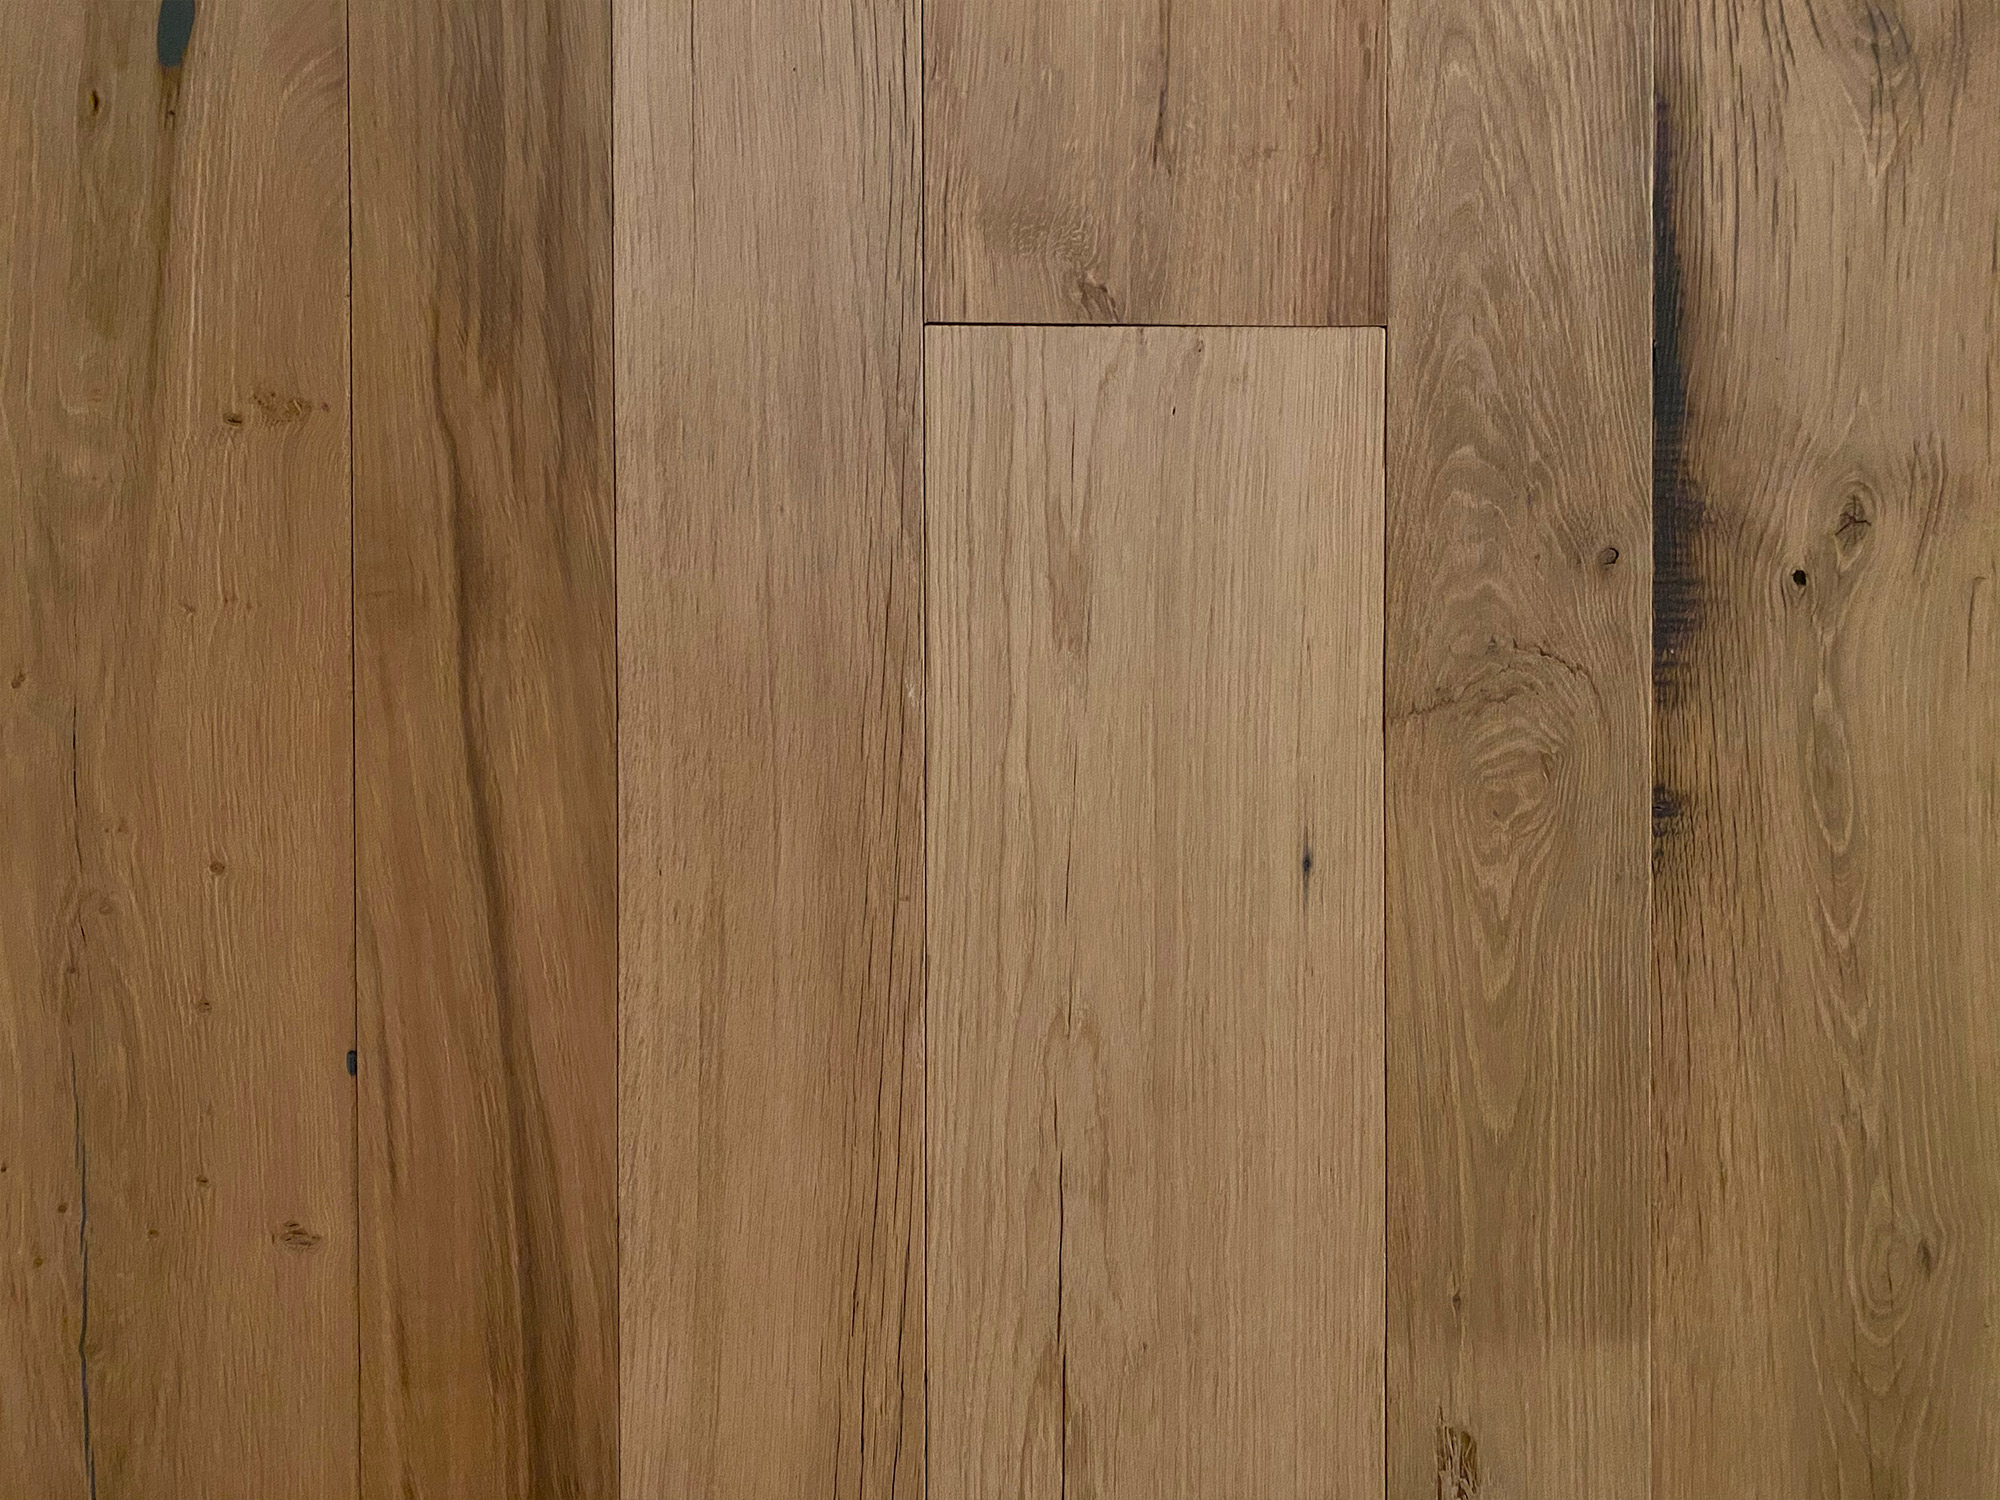 Reclaimed flooring in clean oak finish